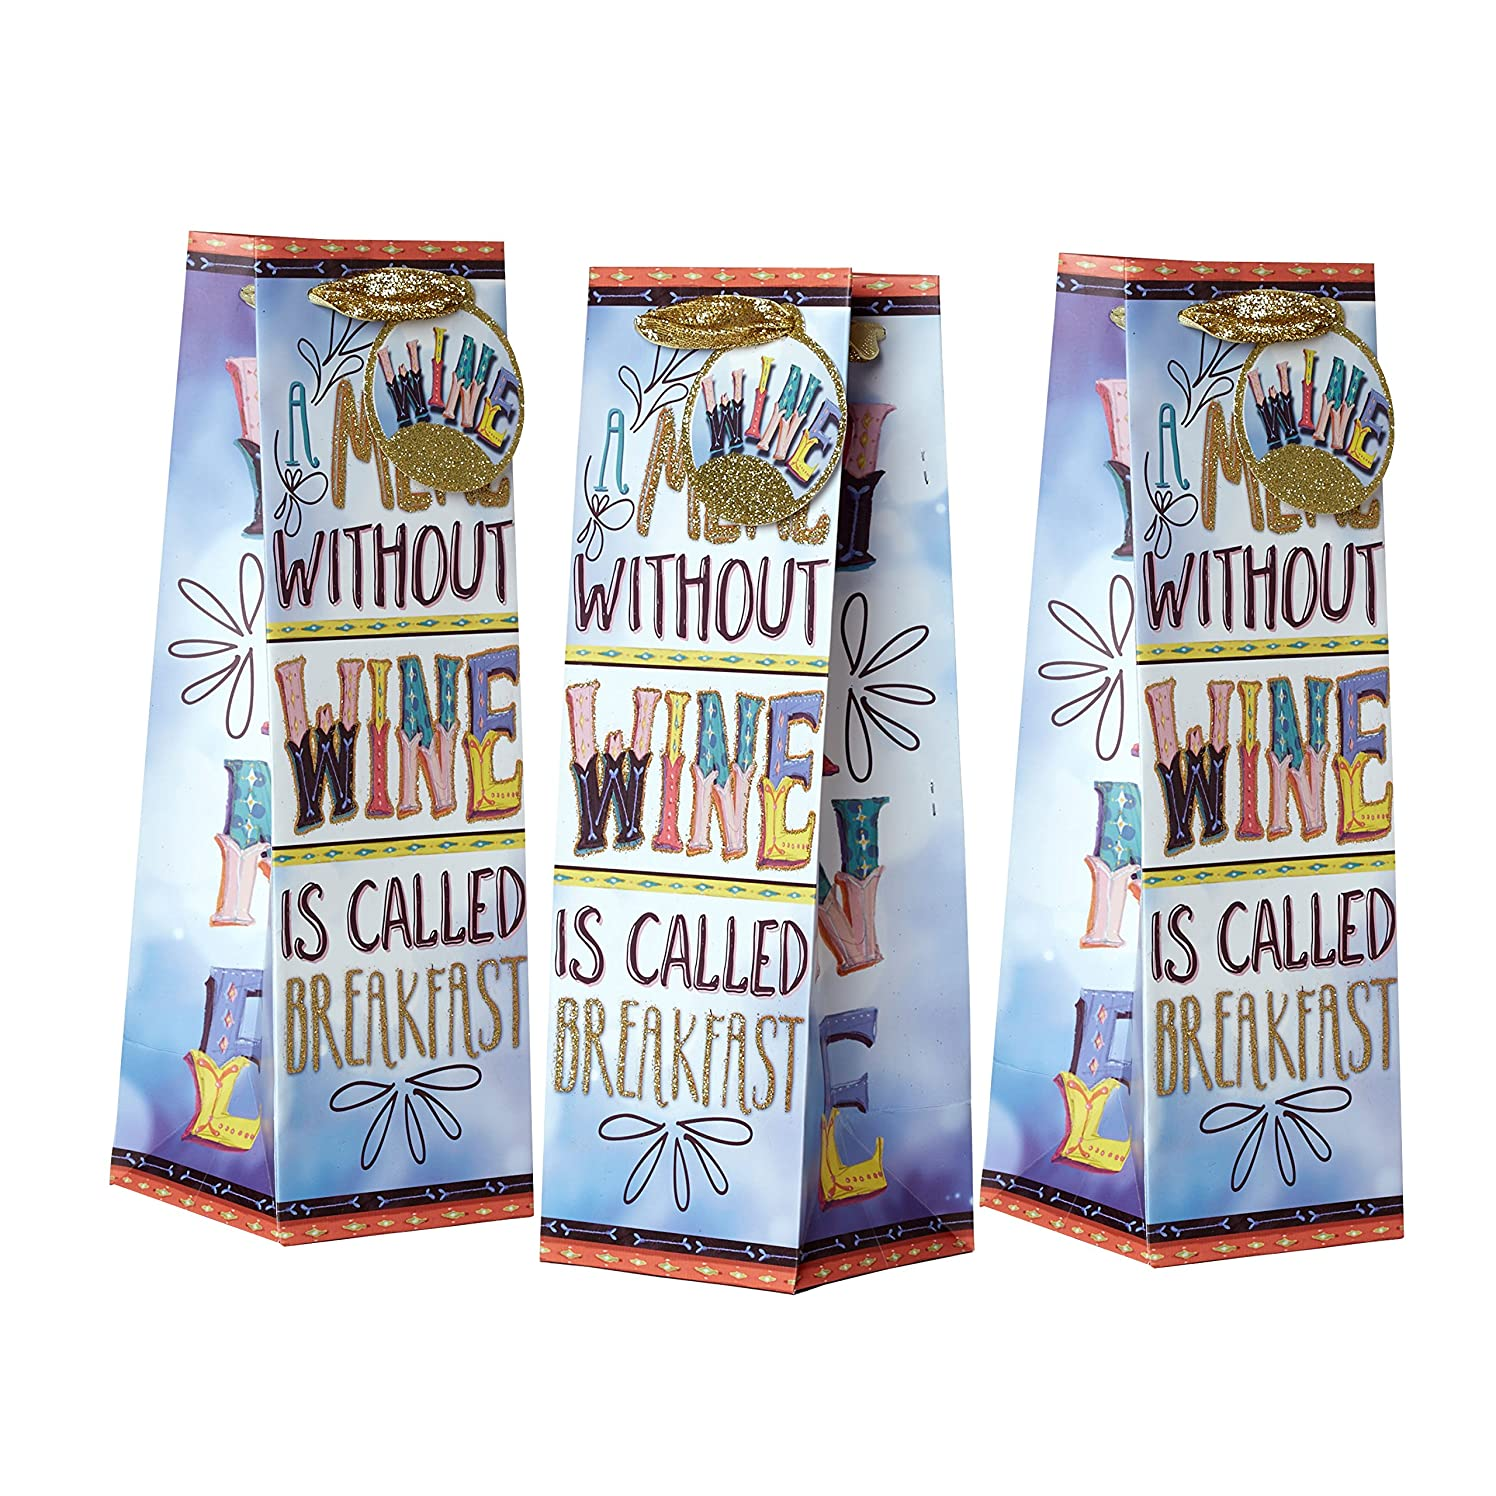 Jillson Roberts Bulk 120-Count Humorous Wine and Bottle Gift Bags Available in 4 Different Designs, A Meal Without Wine is Called Breakfast